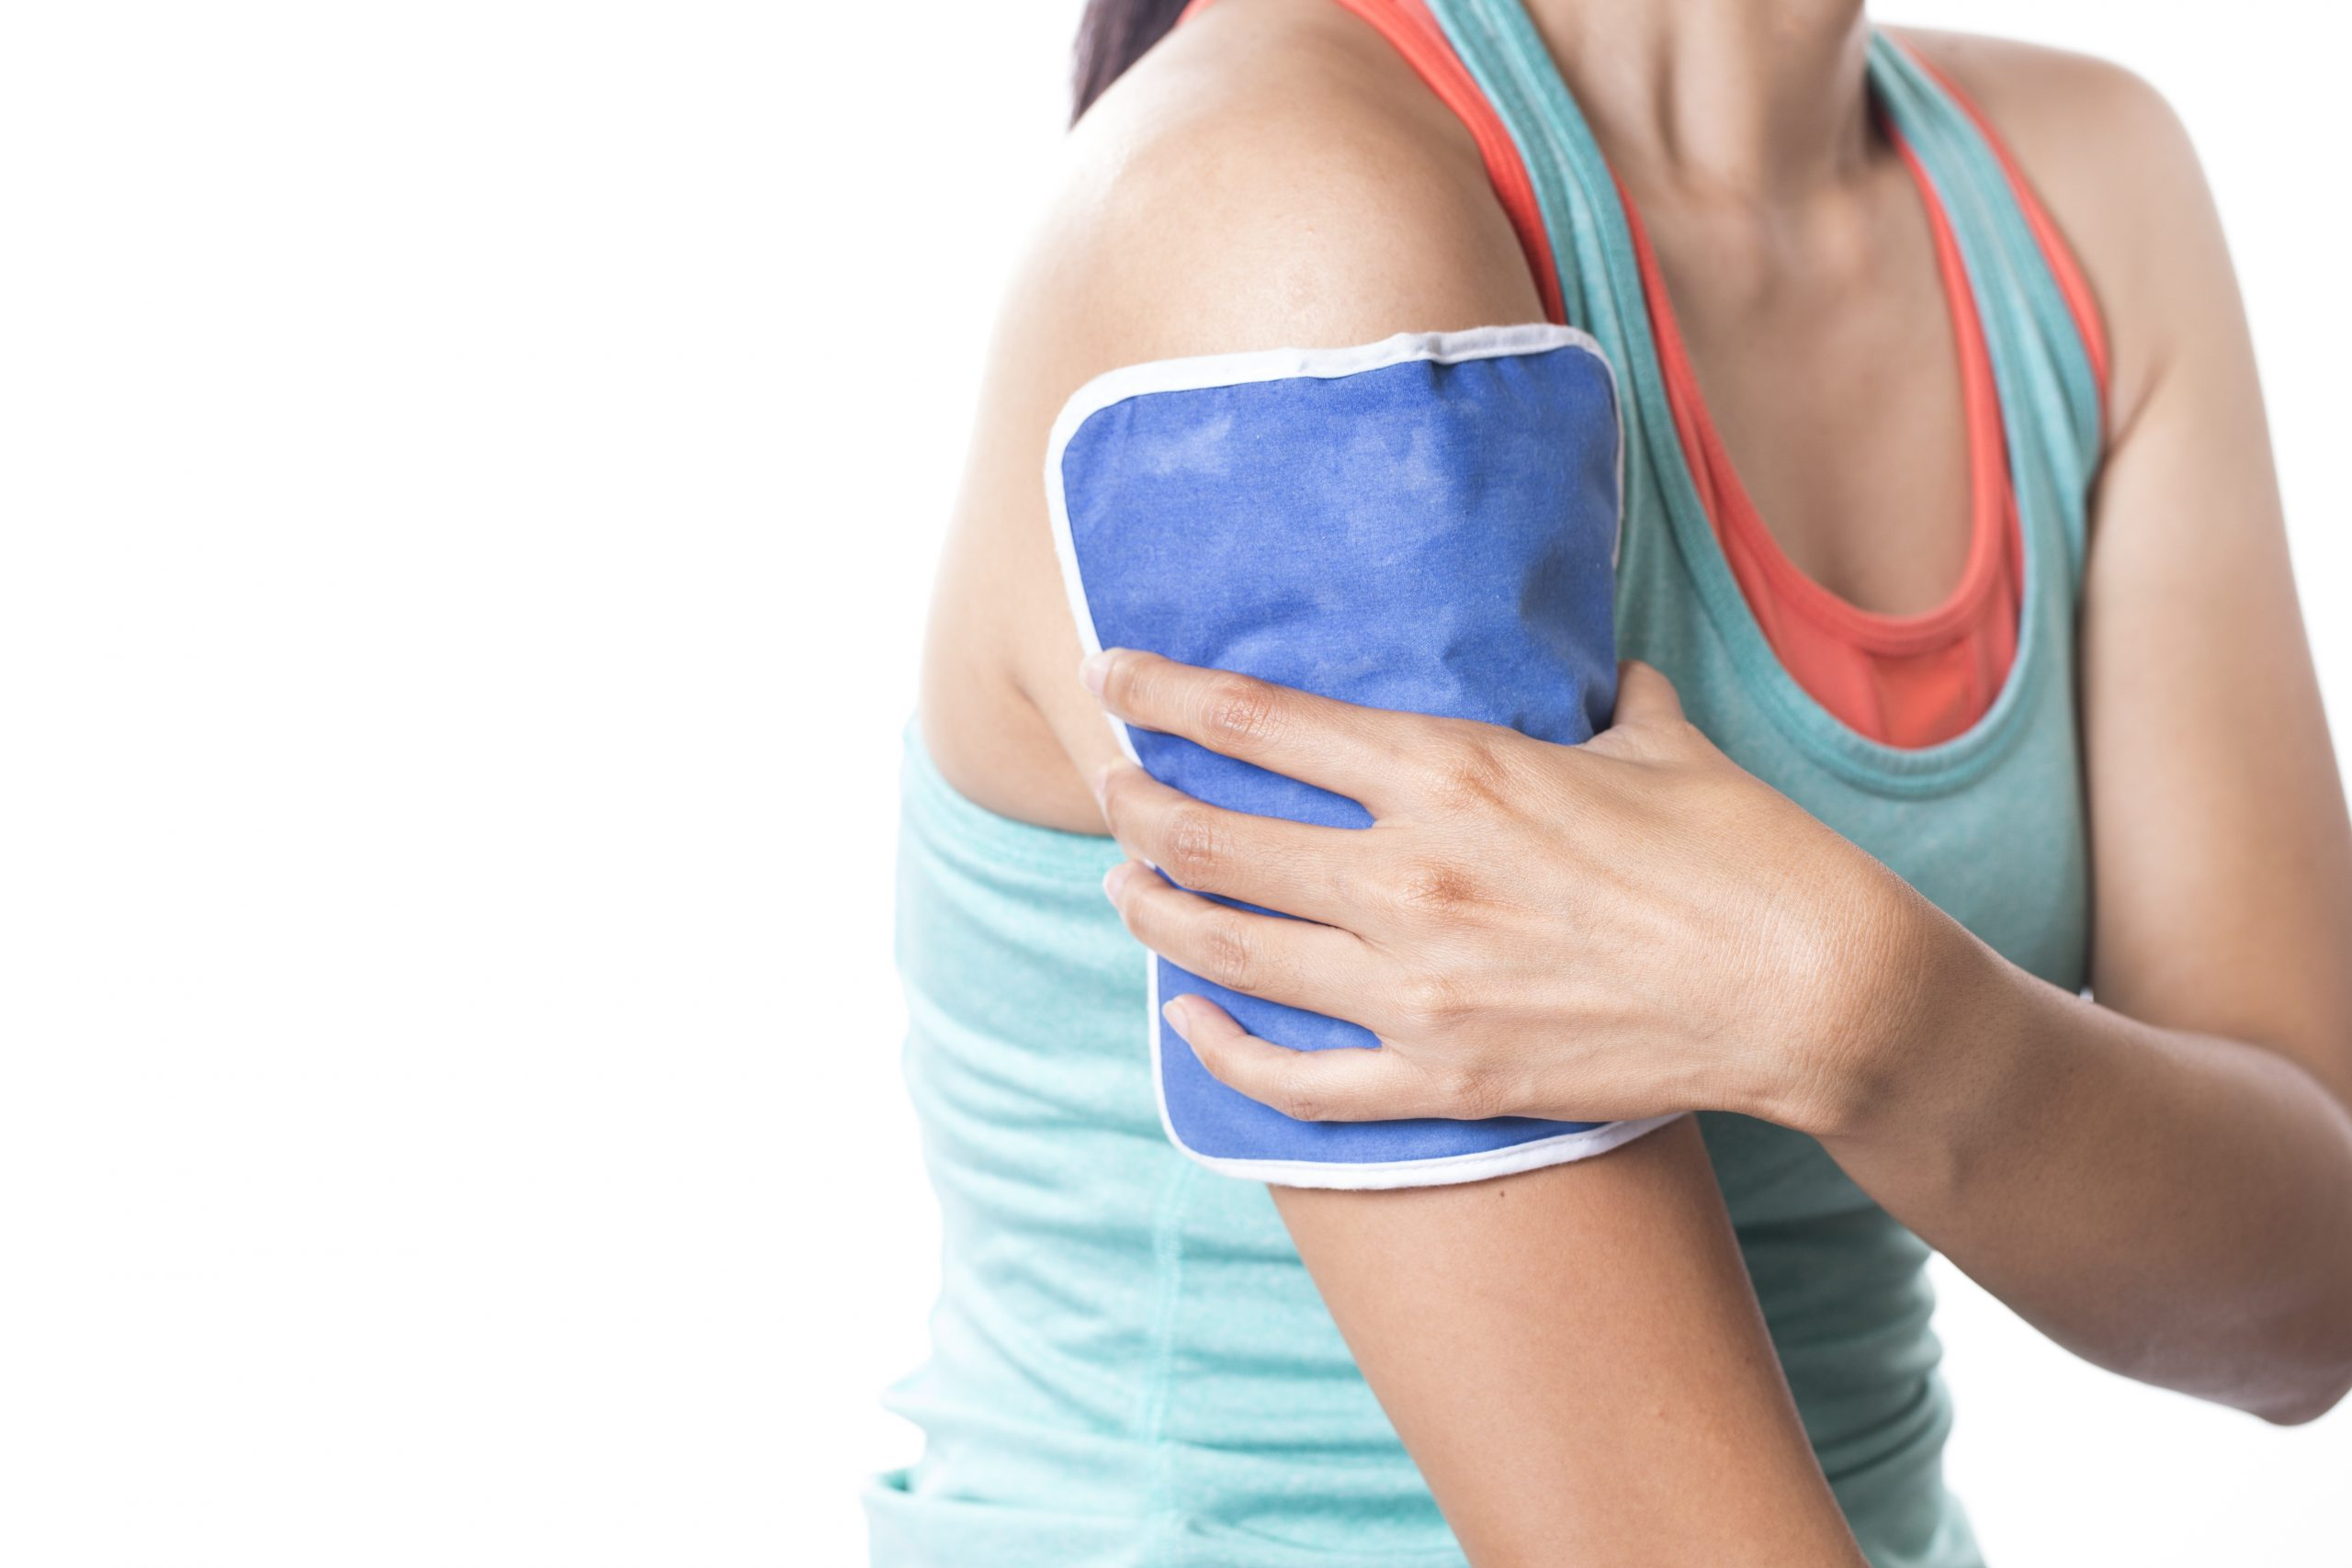 Heat or Ice pack for Injury